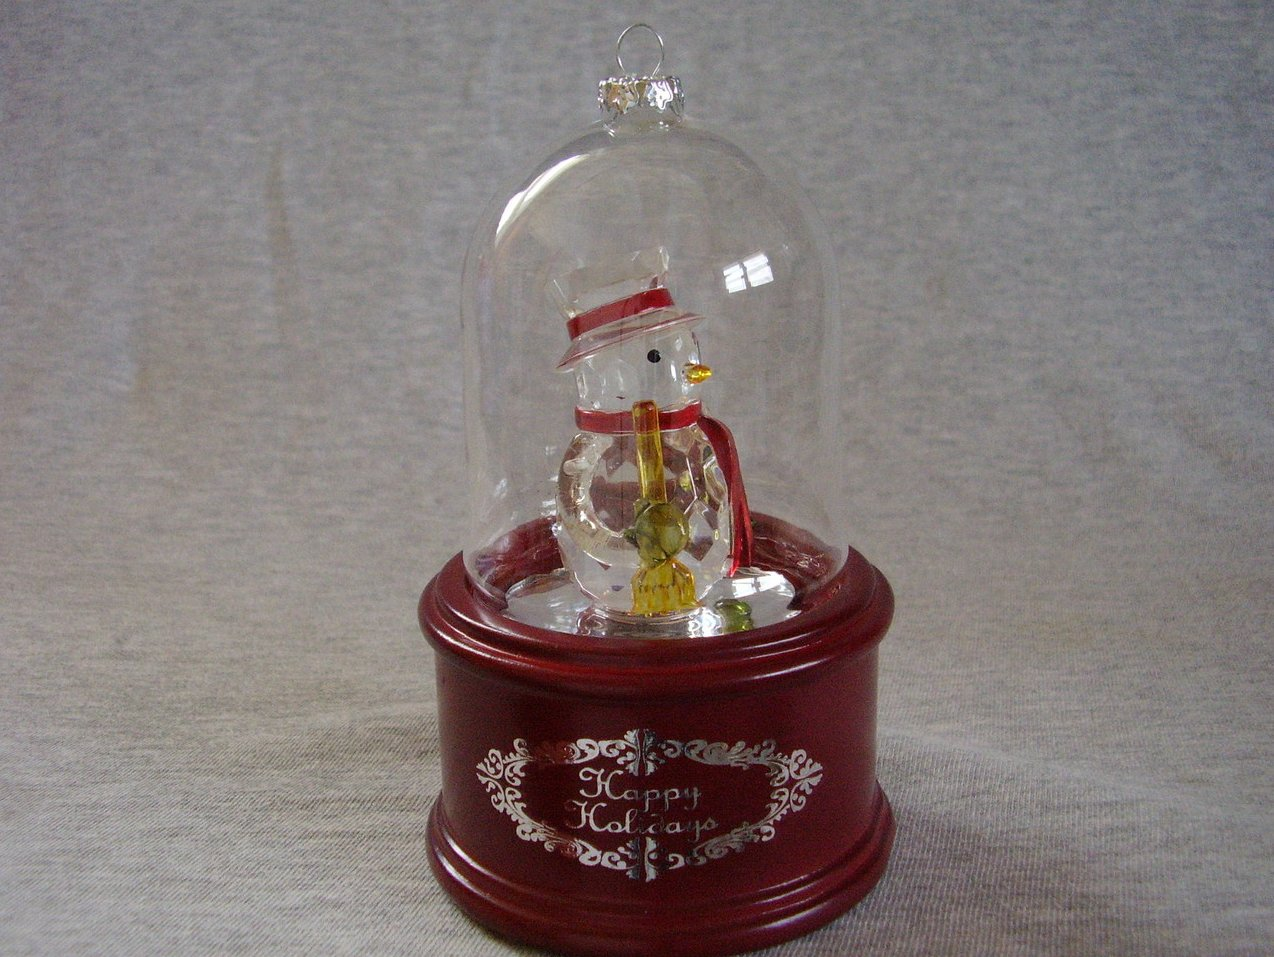 Mr Christmas Deluxe Dome Lighted Musical Snowman Ornament Table or Hanging